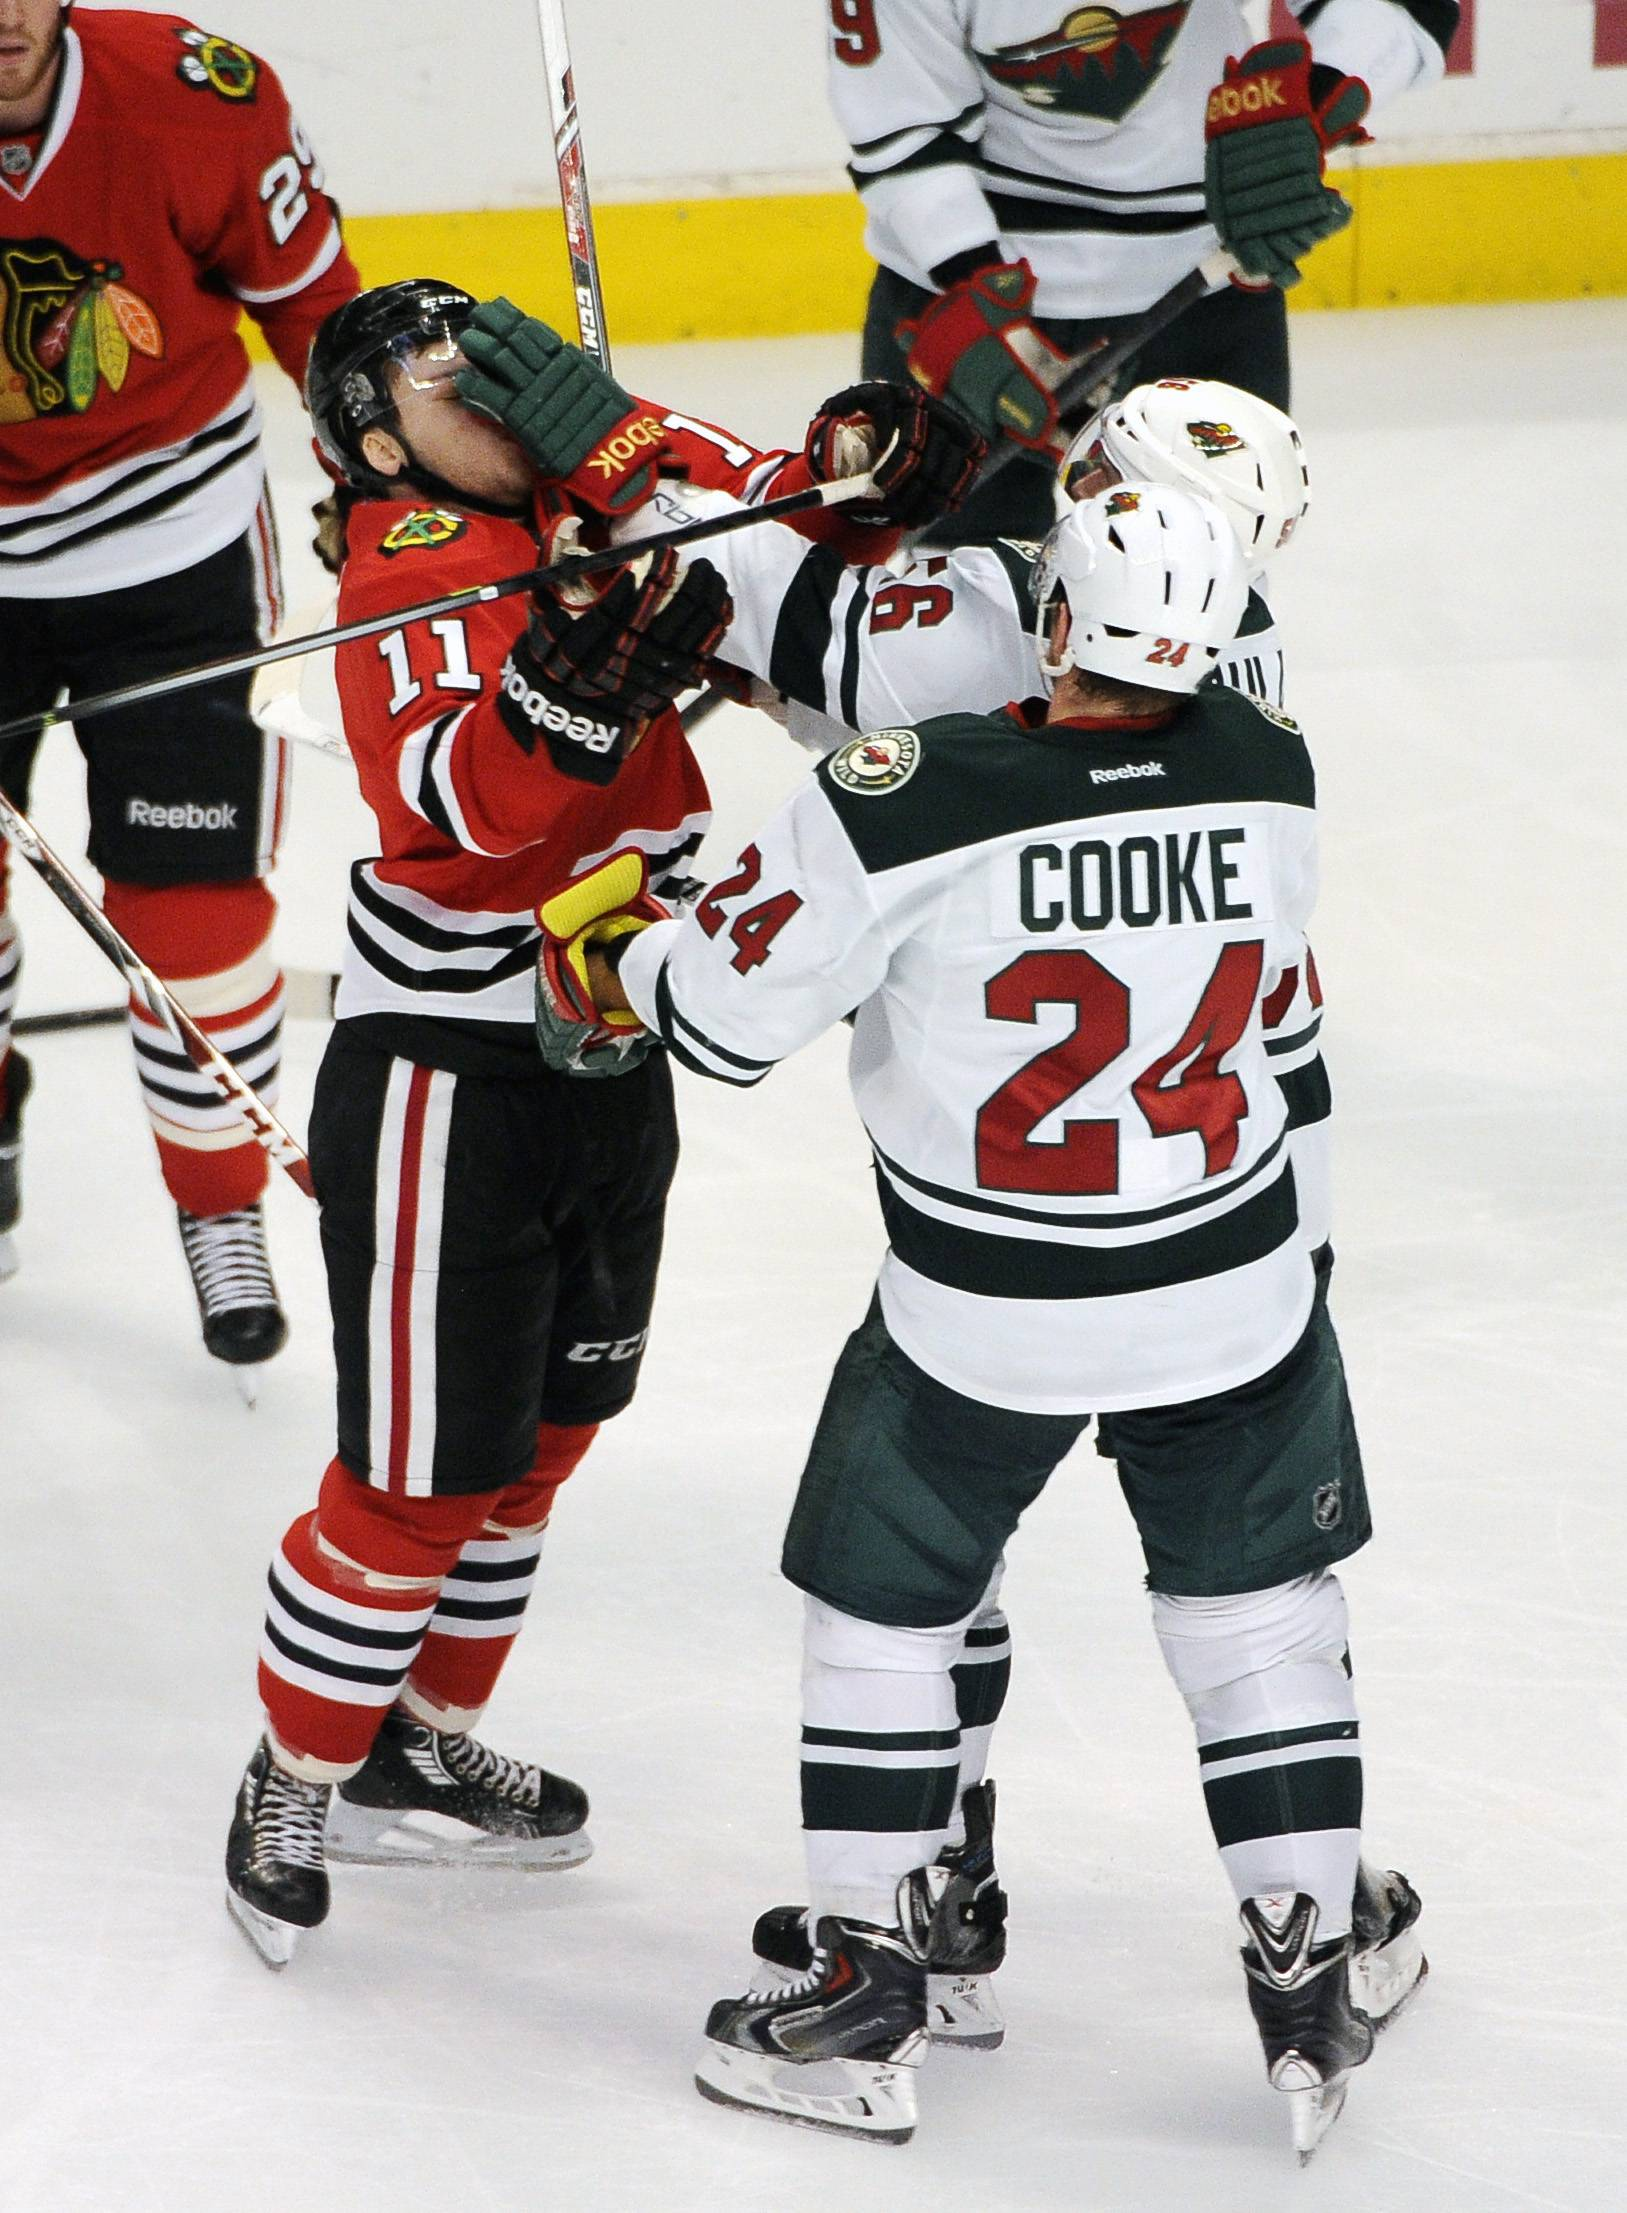 The Blackhawks' Jeremy Morin (11) gets a glove in the face from Minnesota Wild's Erik Haula (56) in the second period of the game in Chicago Thursday.